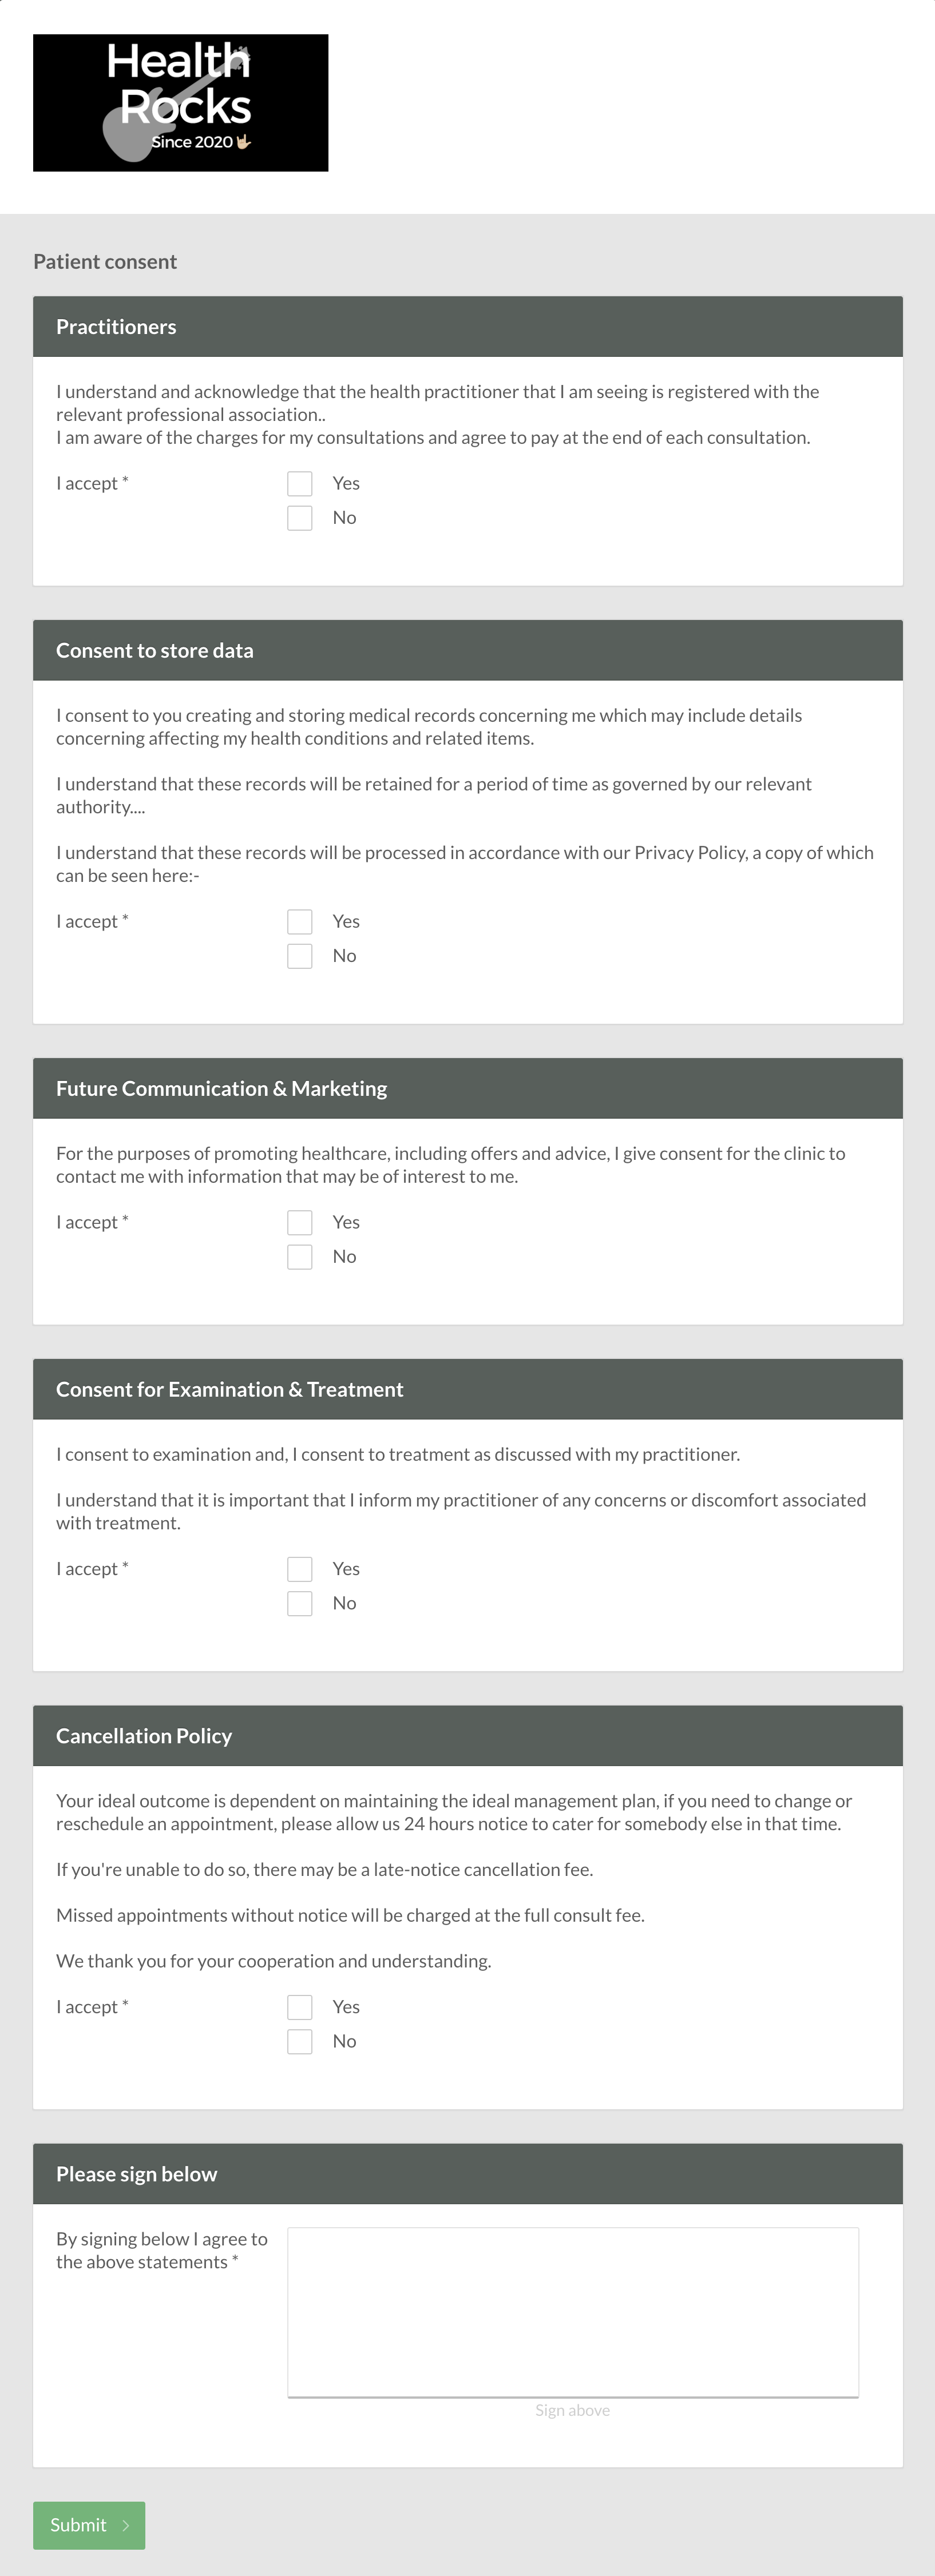 An example of a healthcare consent form